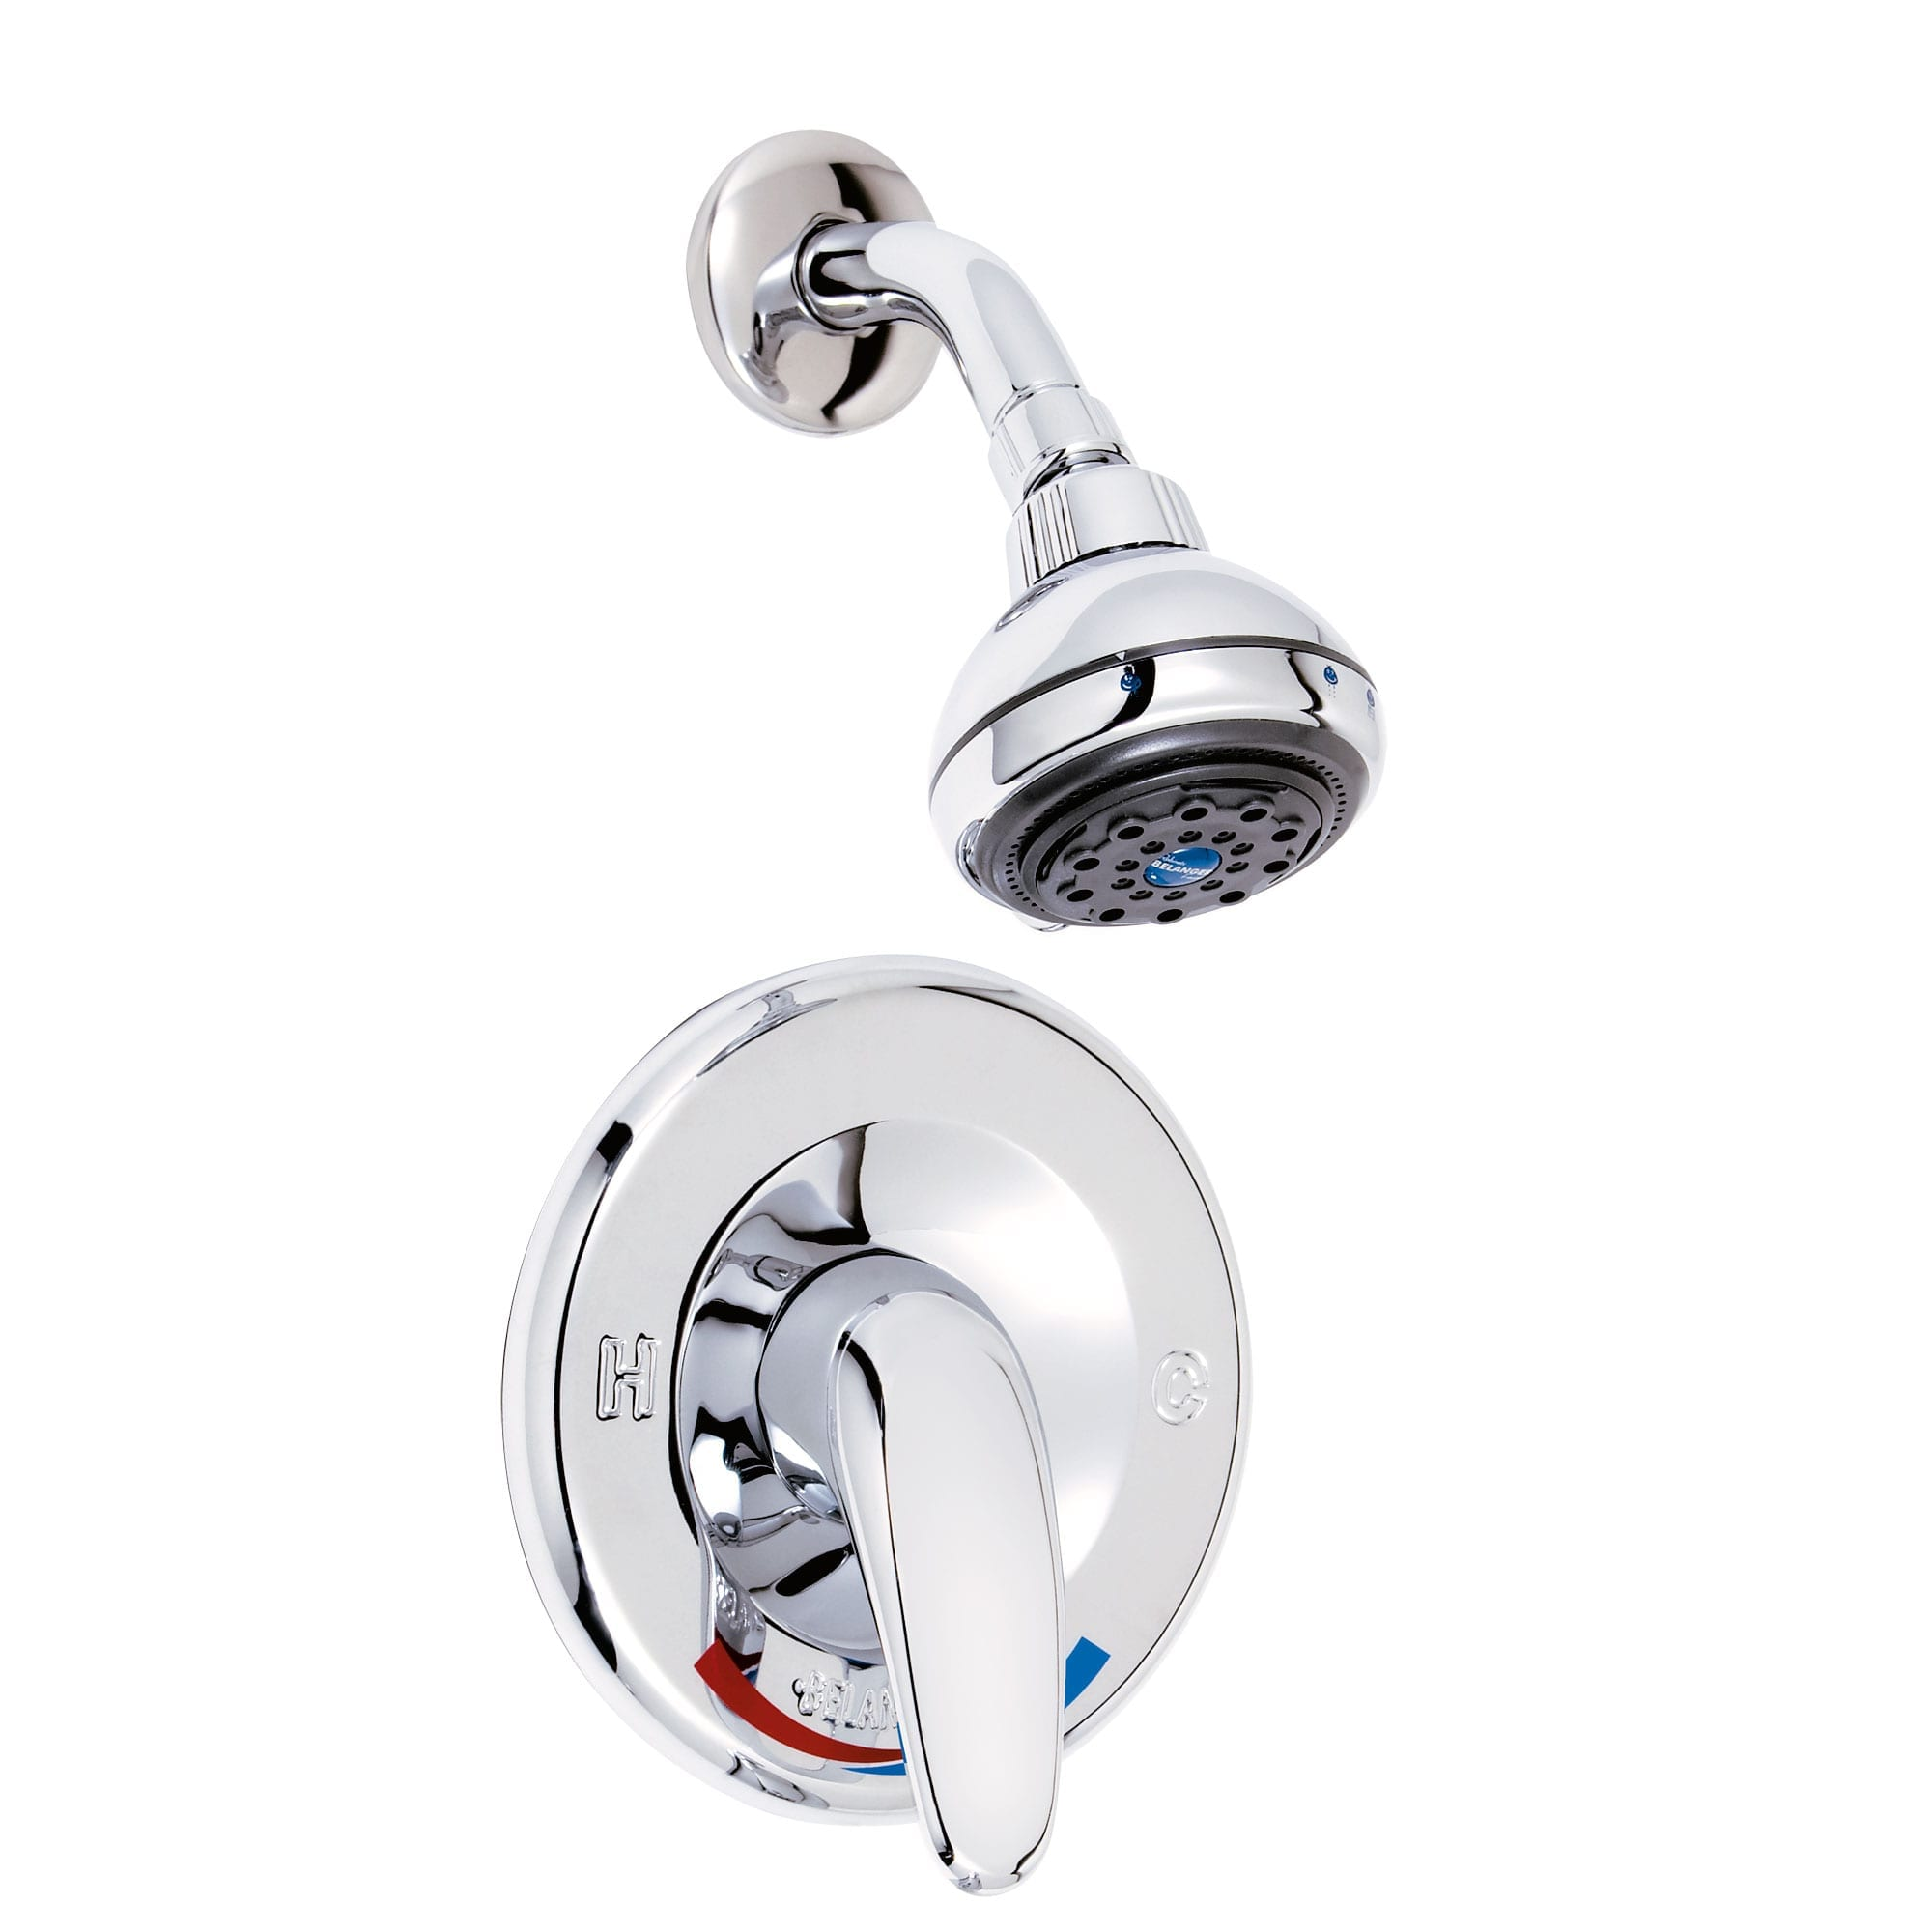 Shower Faucet Complete Model With Pressure Balanced Valve And Volume Control Bélanger Upt